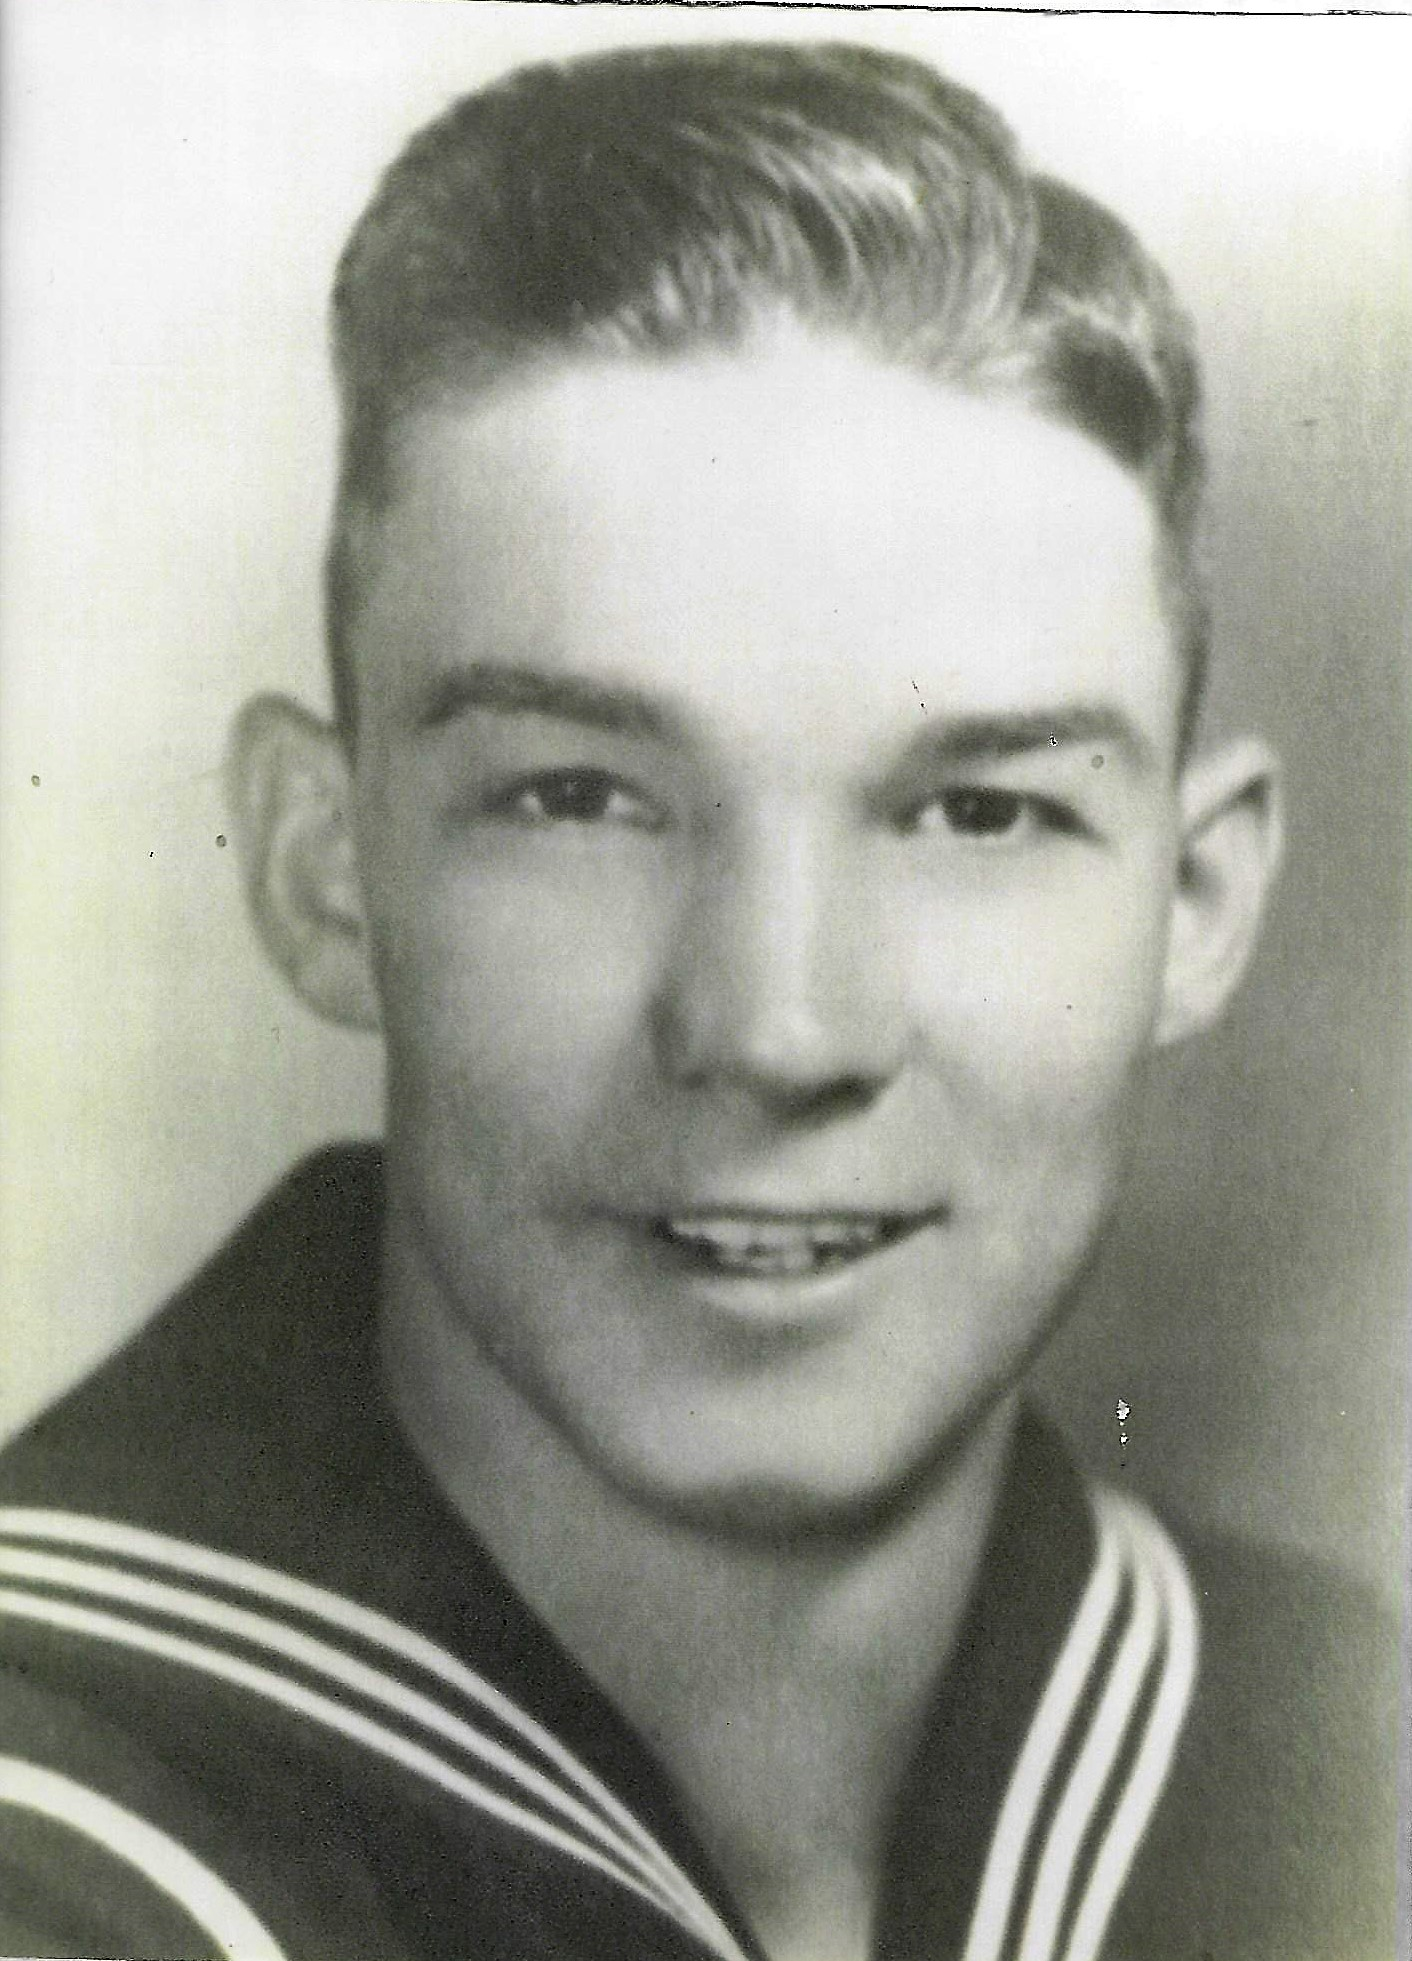 Victor Patrick  Pat  Tumlinson, 19, died on Dec. 7, 1941 in the attack on Pearl Harbor. He's being laid to rest 78 years later in his hometown in Raymondville, Texas.